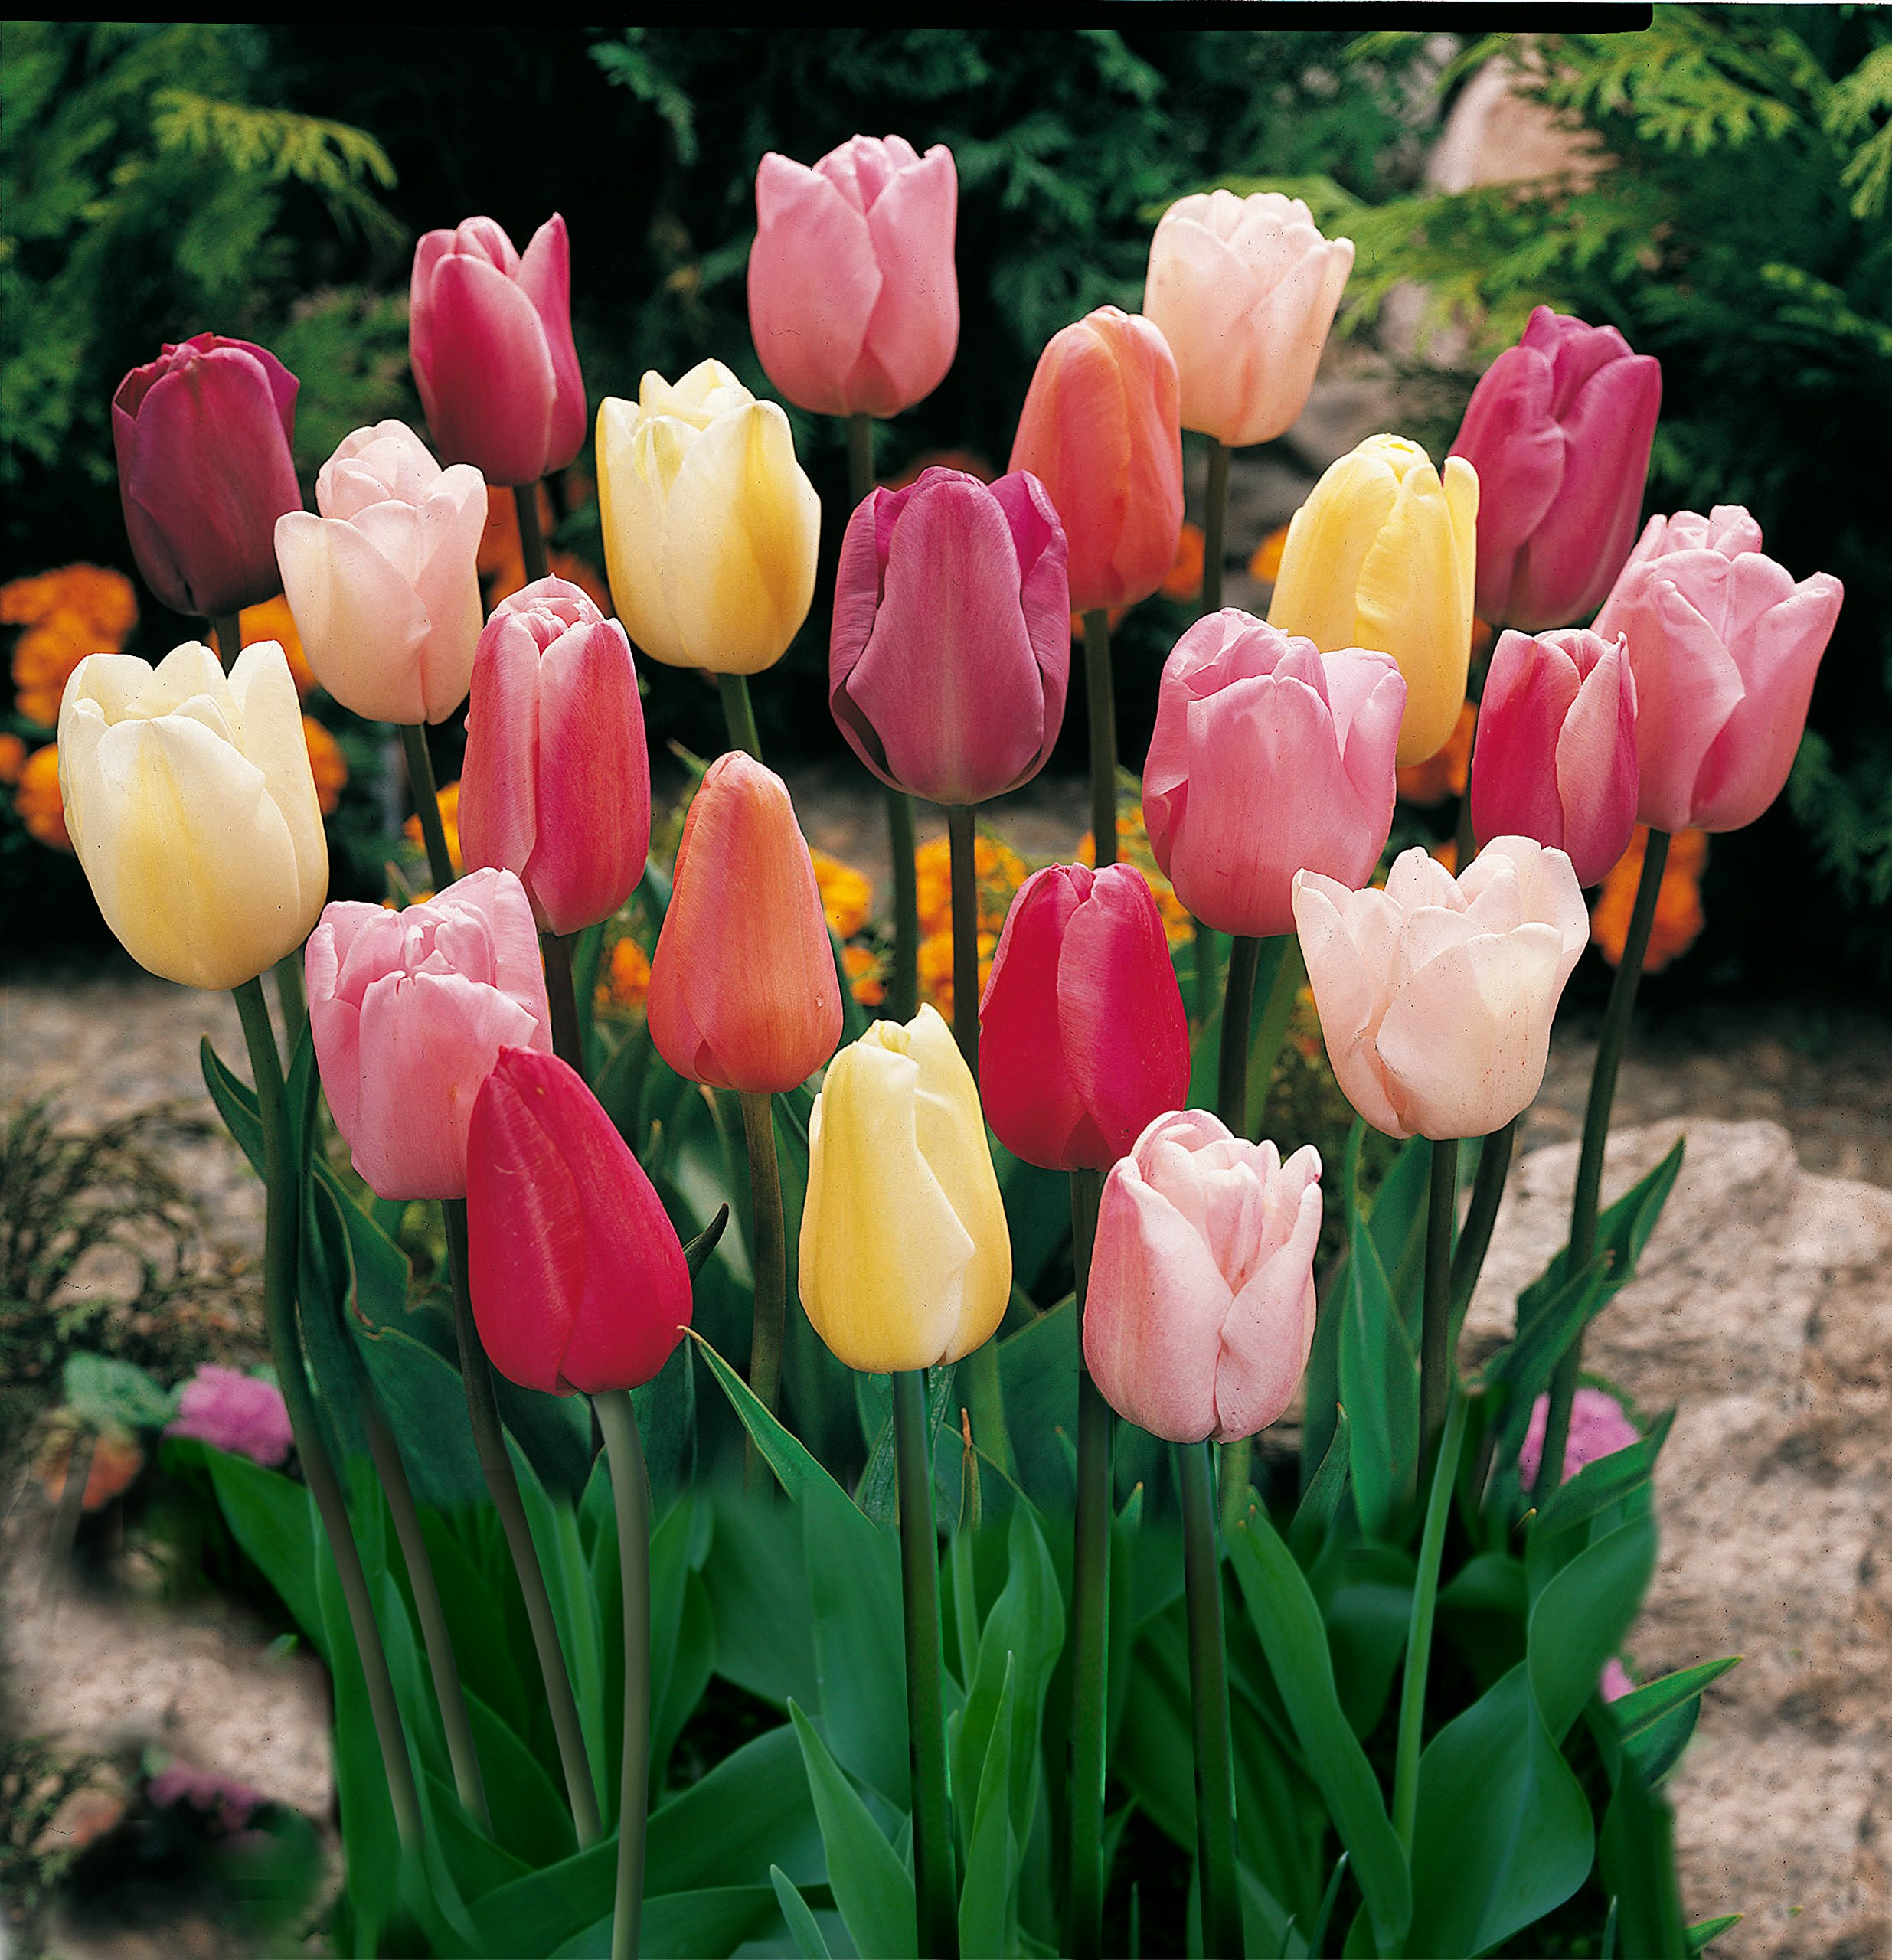 Mixed Triumph Tulips (25 Bulbs) - Assorted Colors of Tulip Bulbs